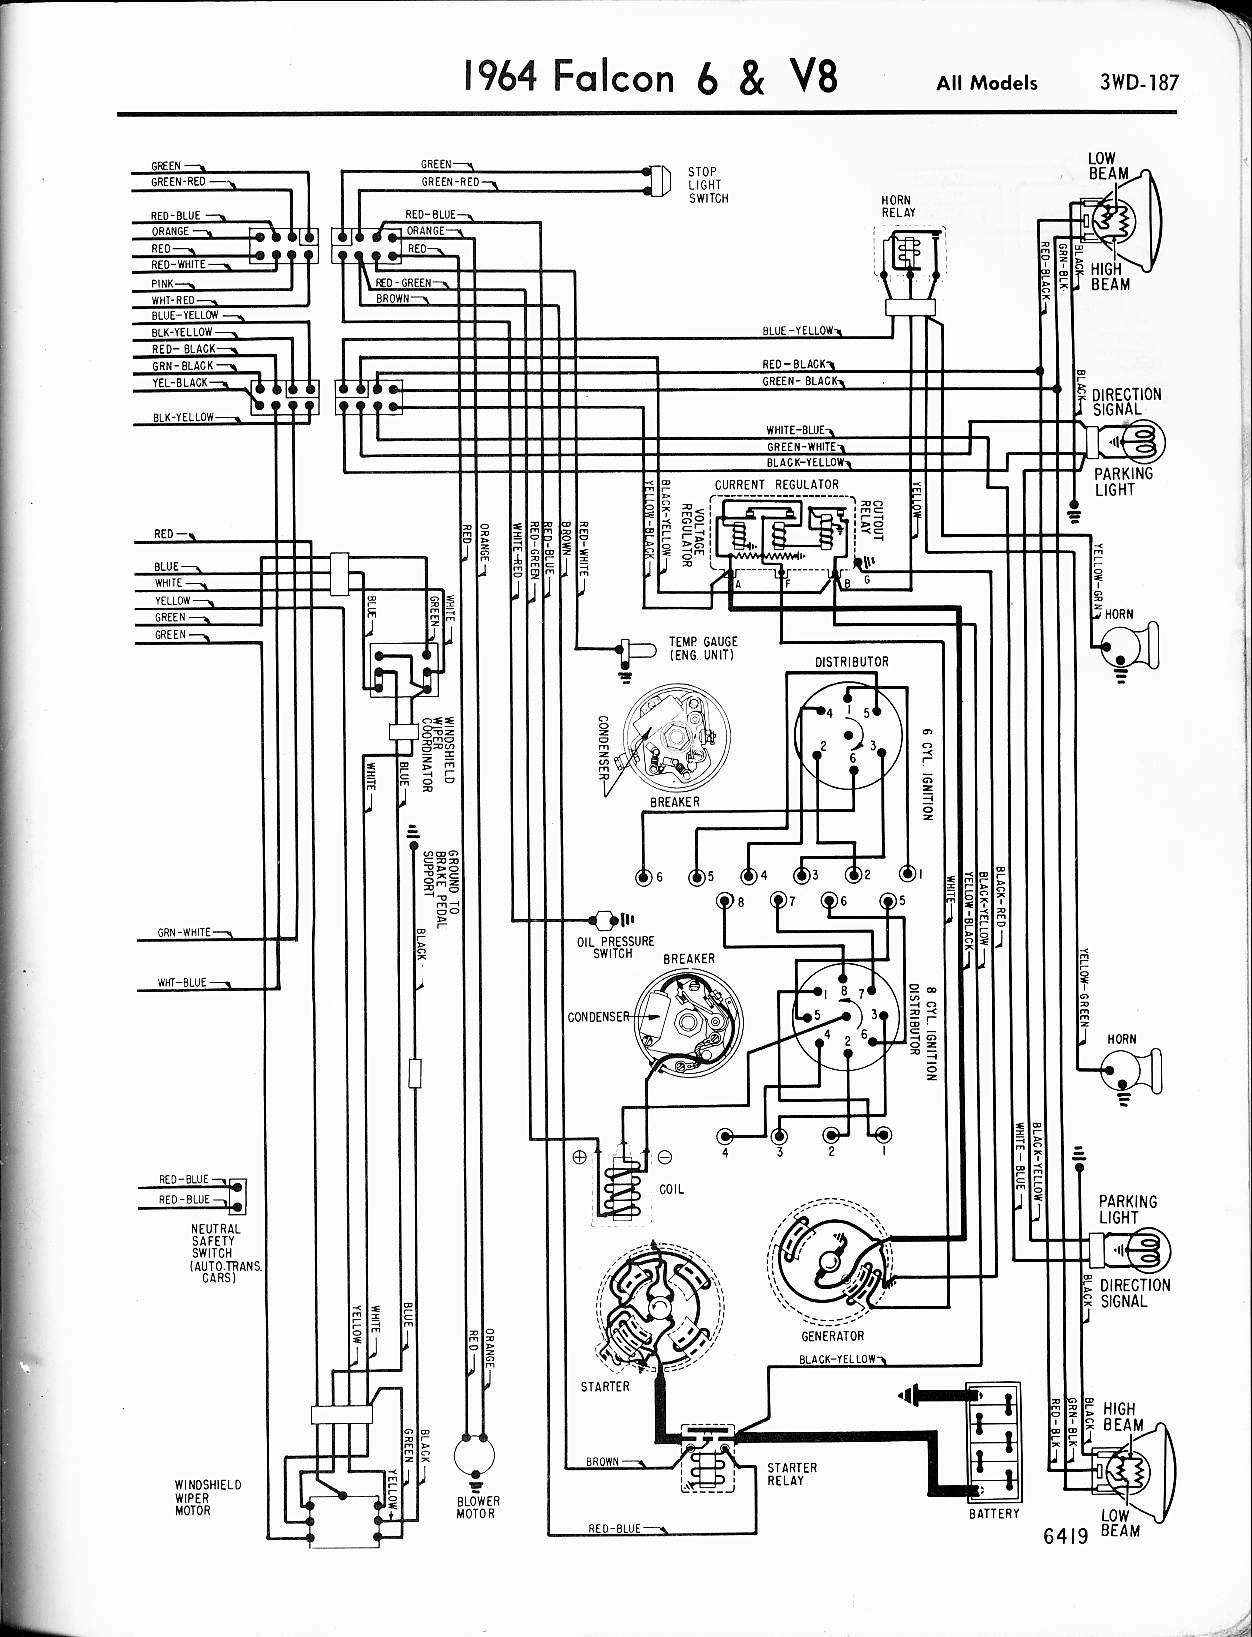 Ford Au Wiring Diagram - Wiring Diagram Data Oreo Au Falcon Wiring Diagram on ar diagram, pe diagram, vg diagram, ac diagram, cd diagram, vn diagram, pt diagram, ro diagram, ba diagram,